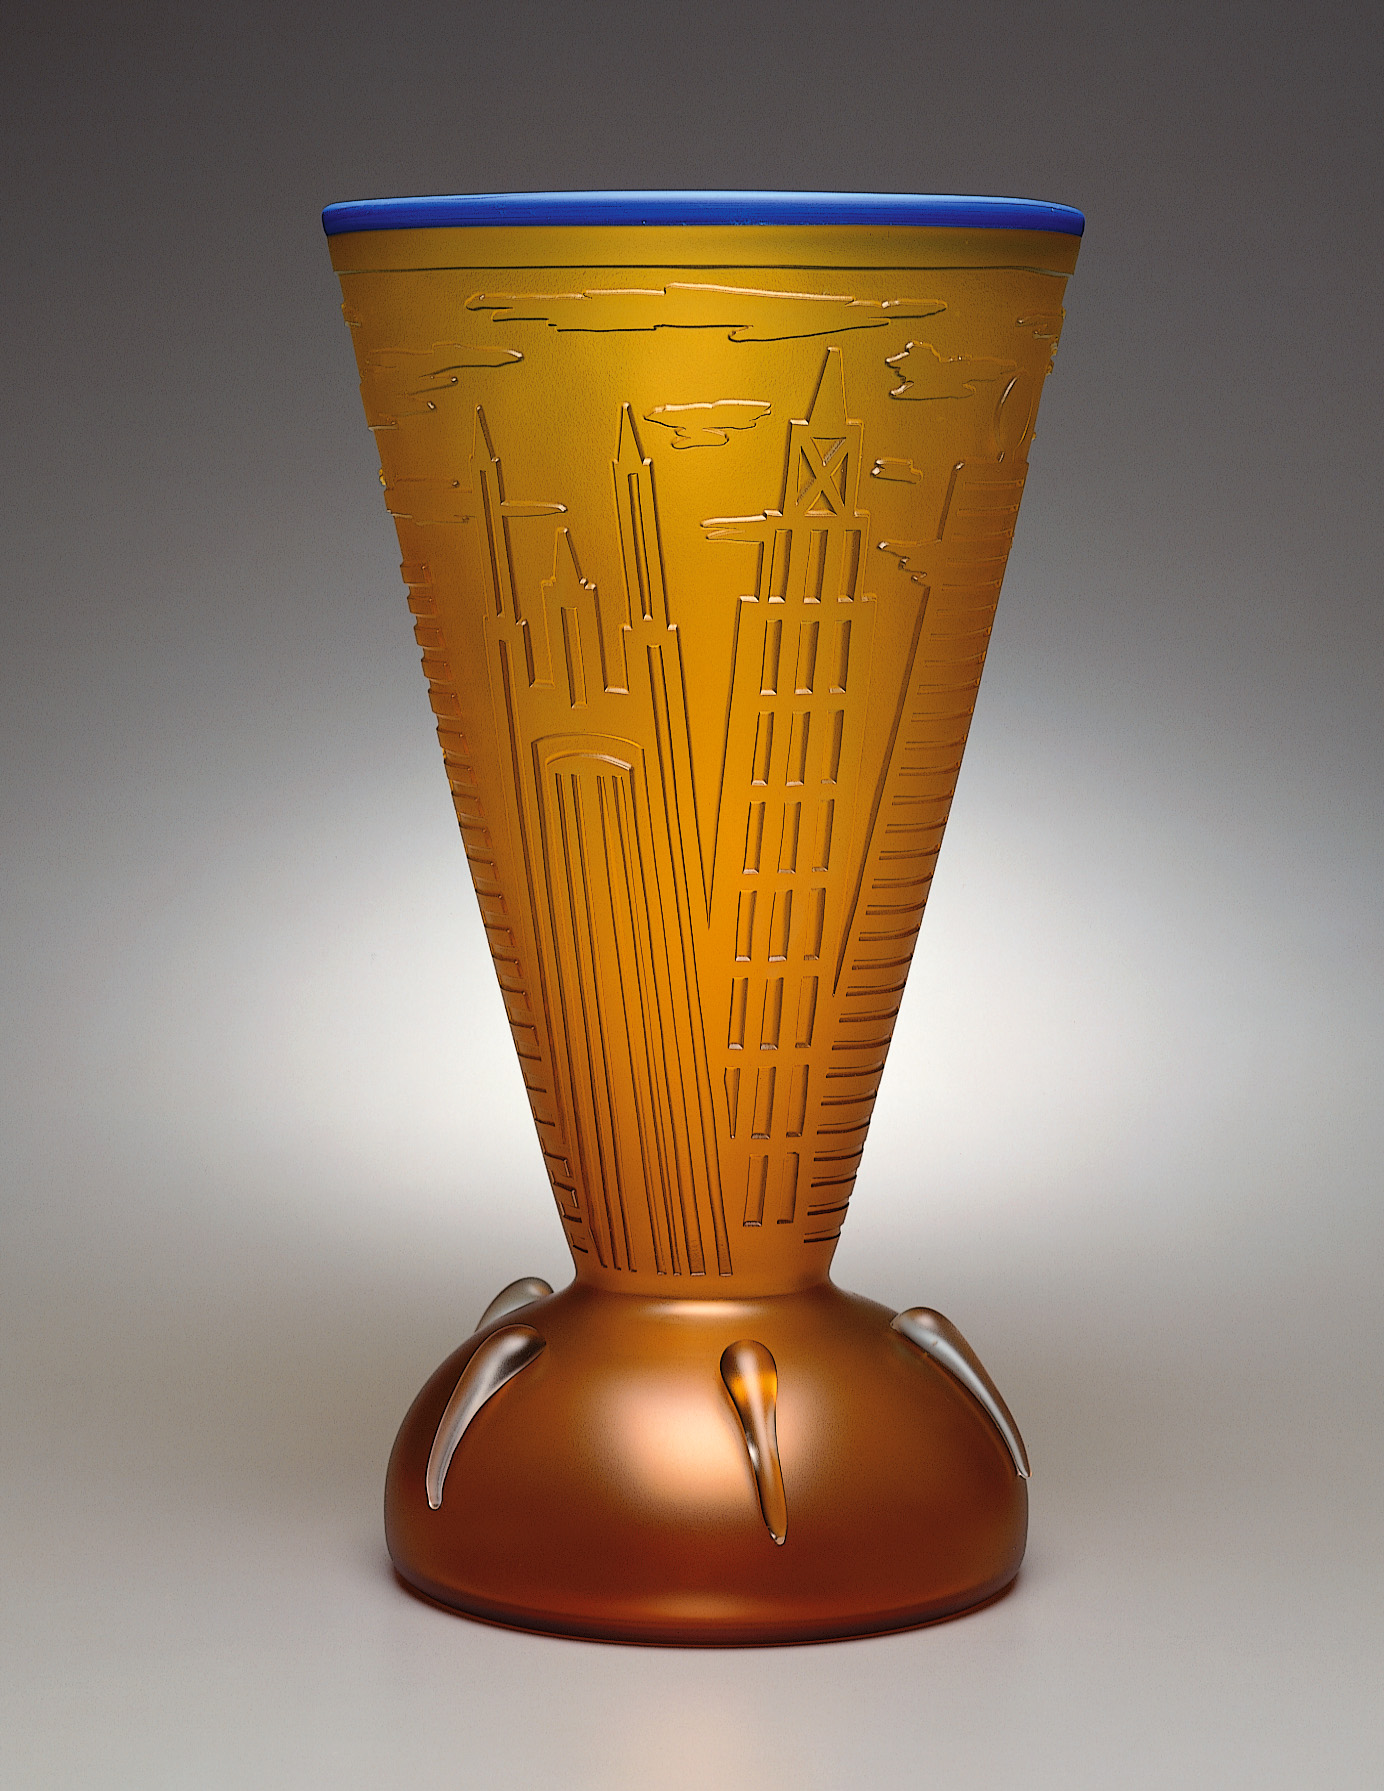 New York 5   1994. Blown glass, sandblasted and acid polished. 19½ x 11 x 11""